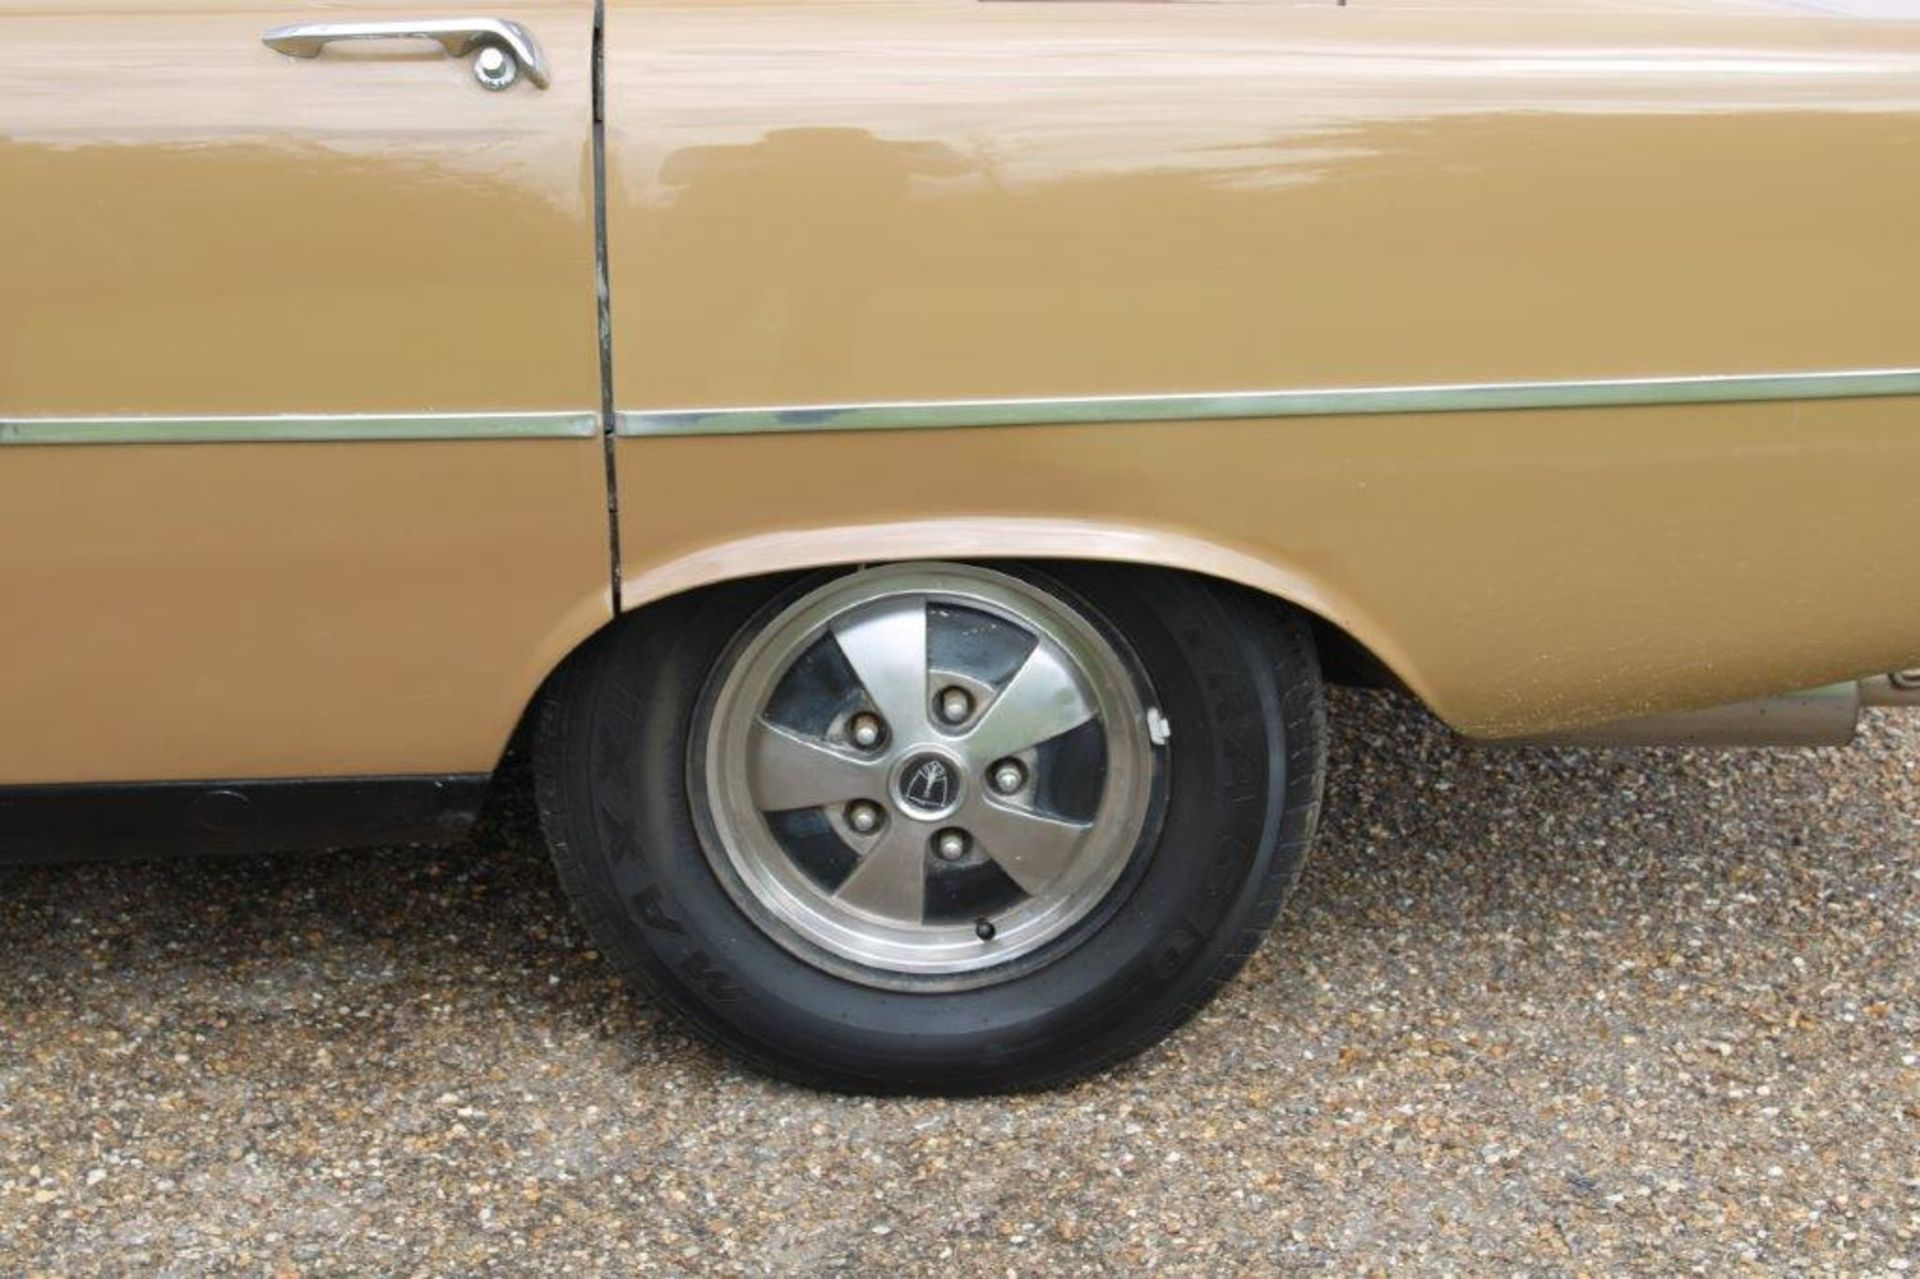 1970 Rover P6 3500 S 1 of 6 development cars - Image 5 of 21